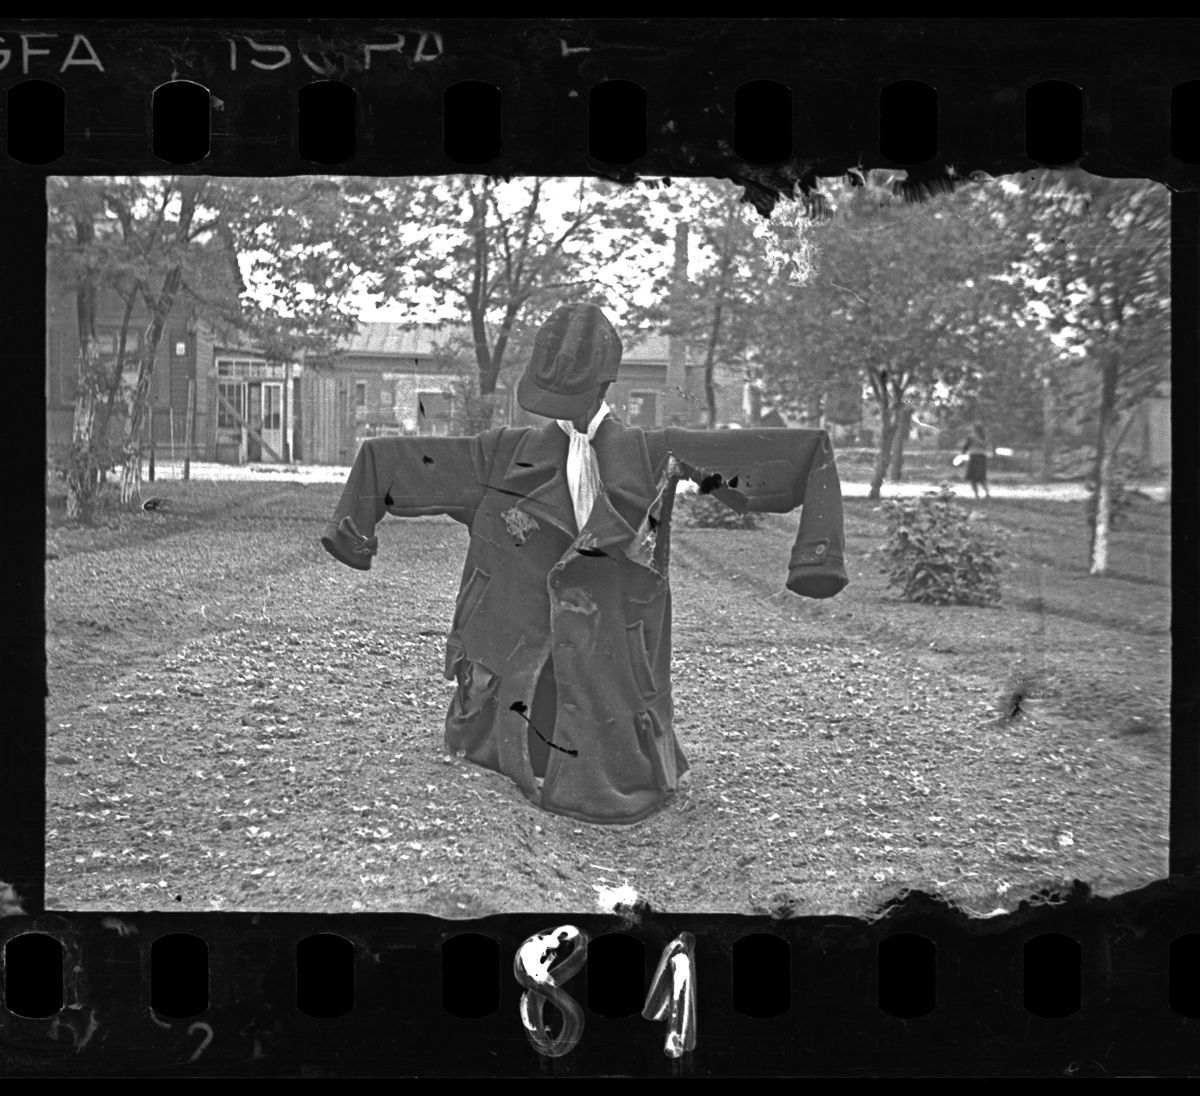 Lodz ghetto photos c. 1940-1944 A scarecrow with a yellow Star of David.